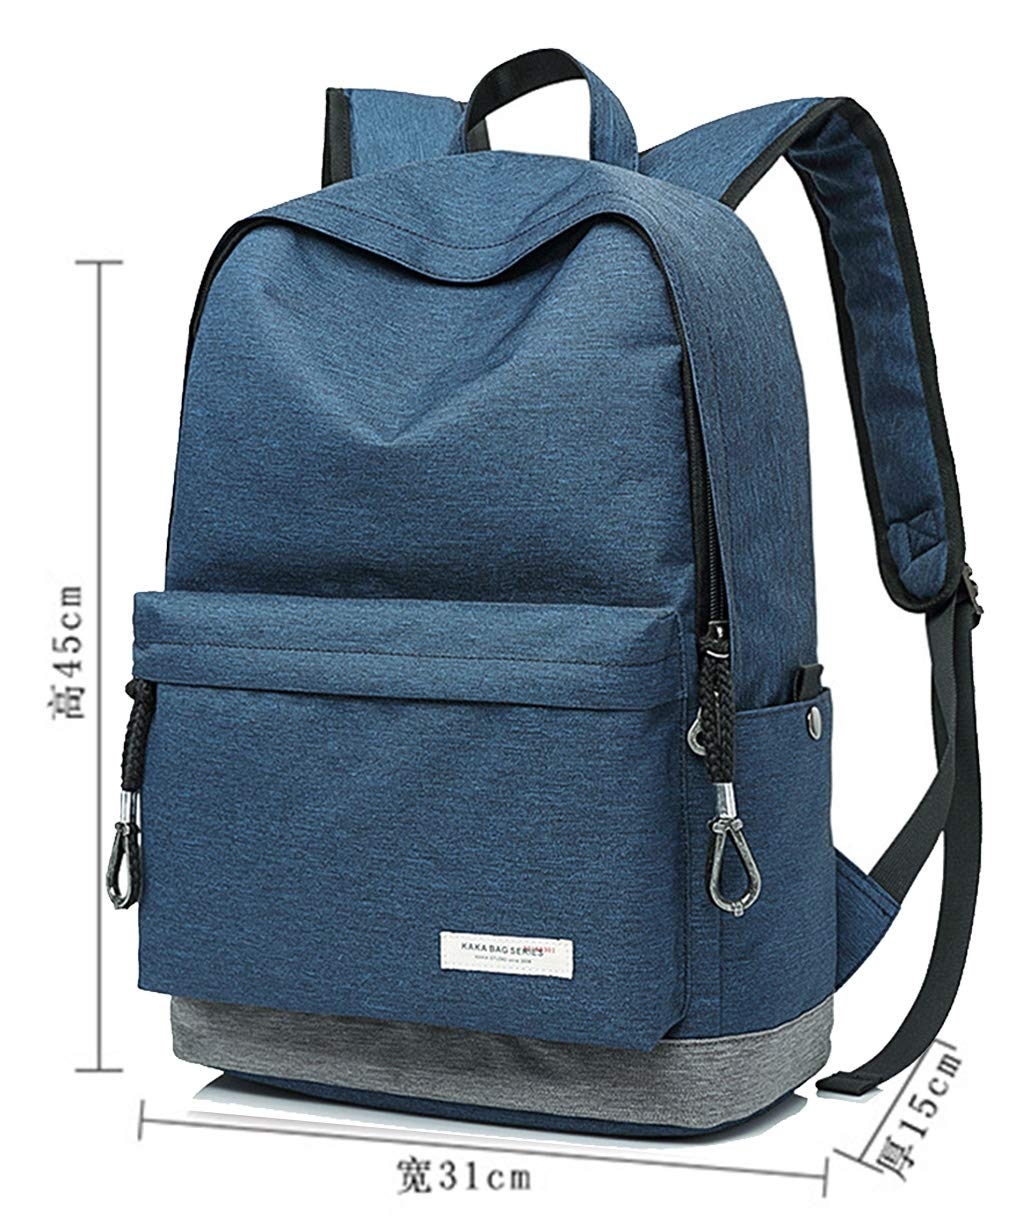 cee2f0d96c45 Amazon.com: Hkiss Backpack Business Travel Durable School Student ...